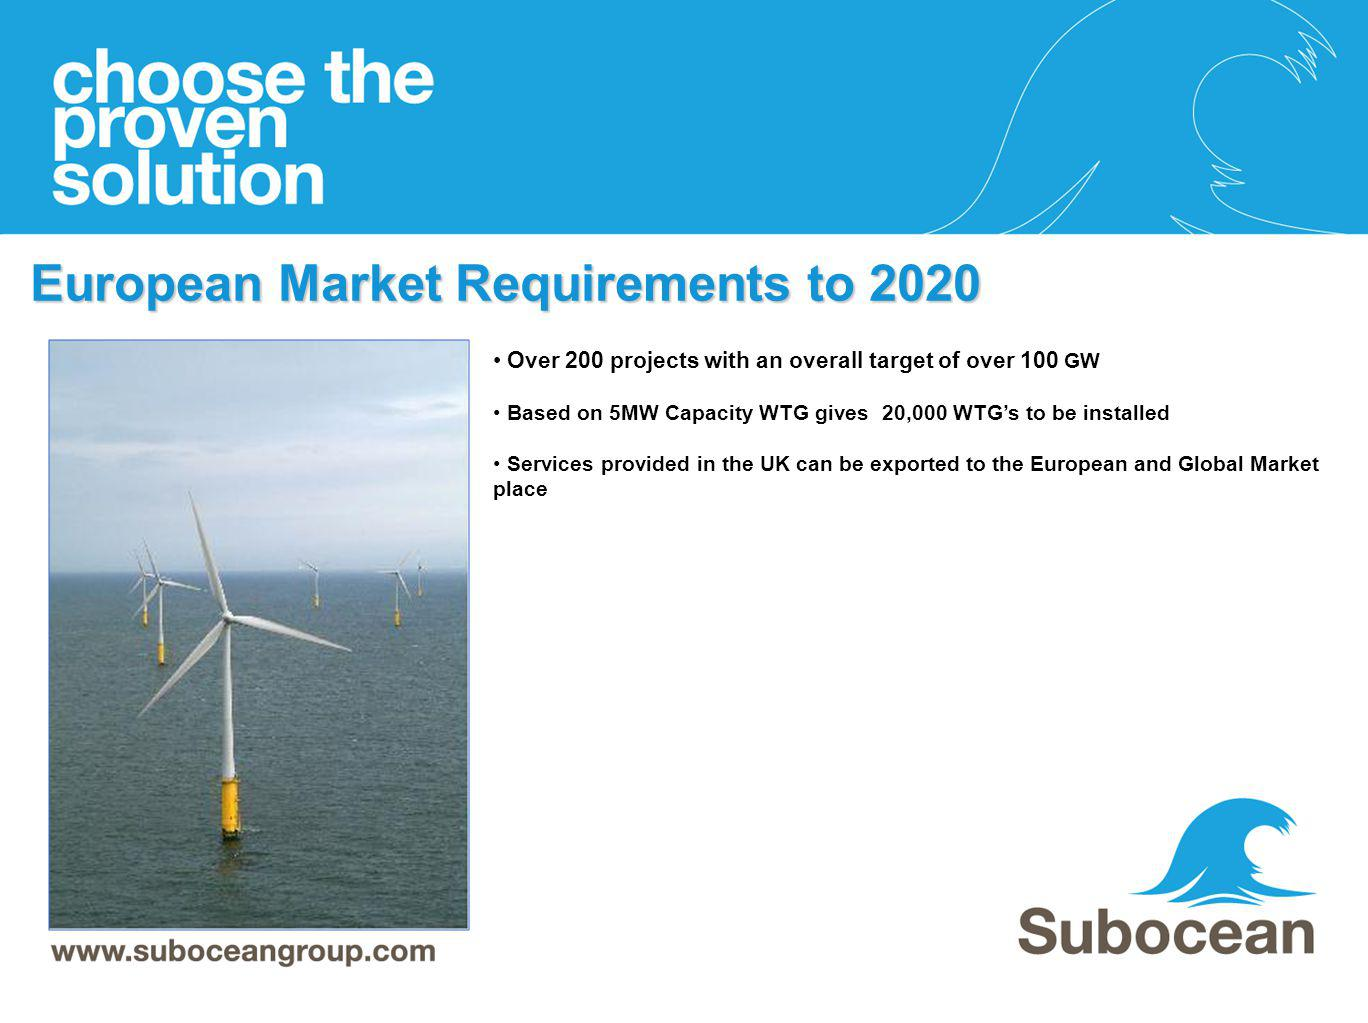 European Market Requirements to 2020